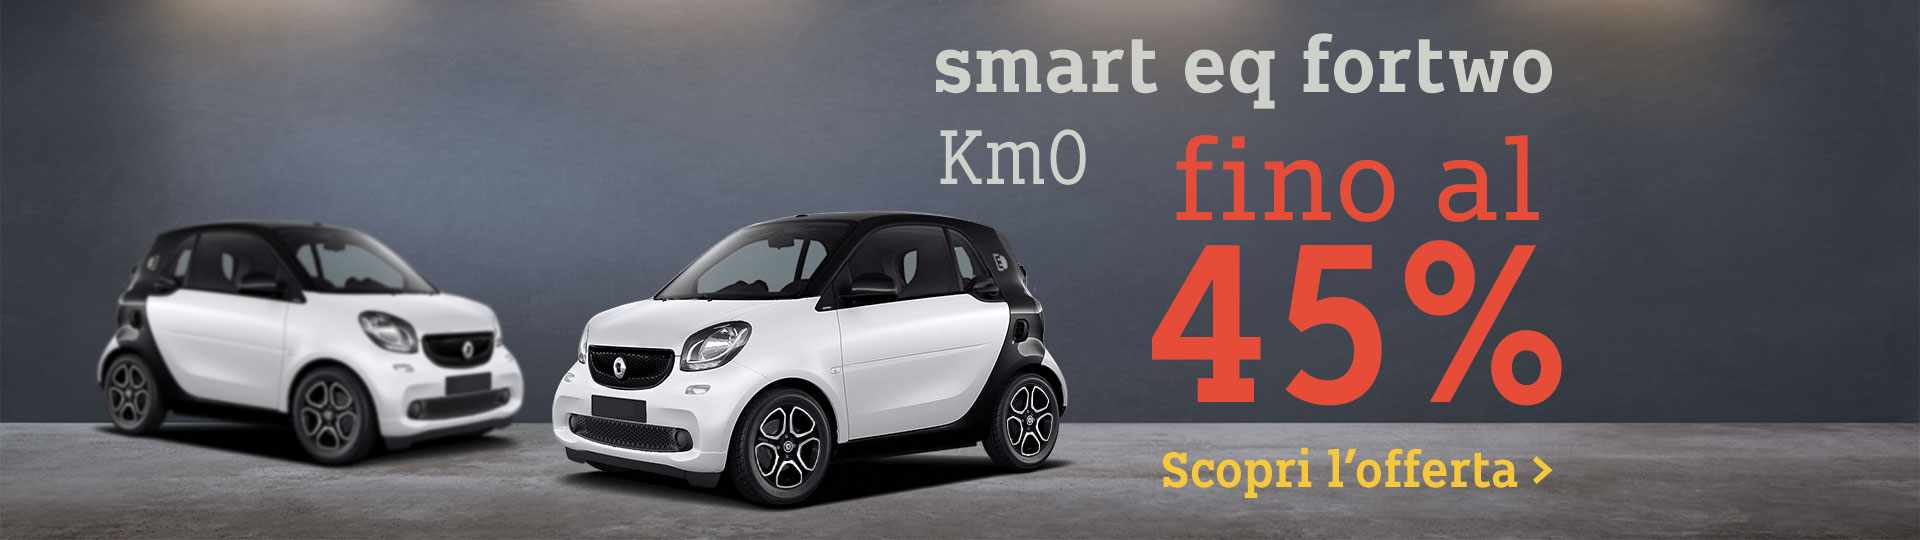 header_desktop_sconto_smart_eq_45_dic_2020.jpg